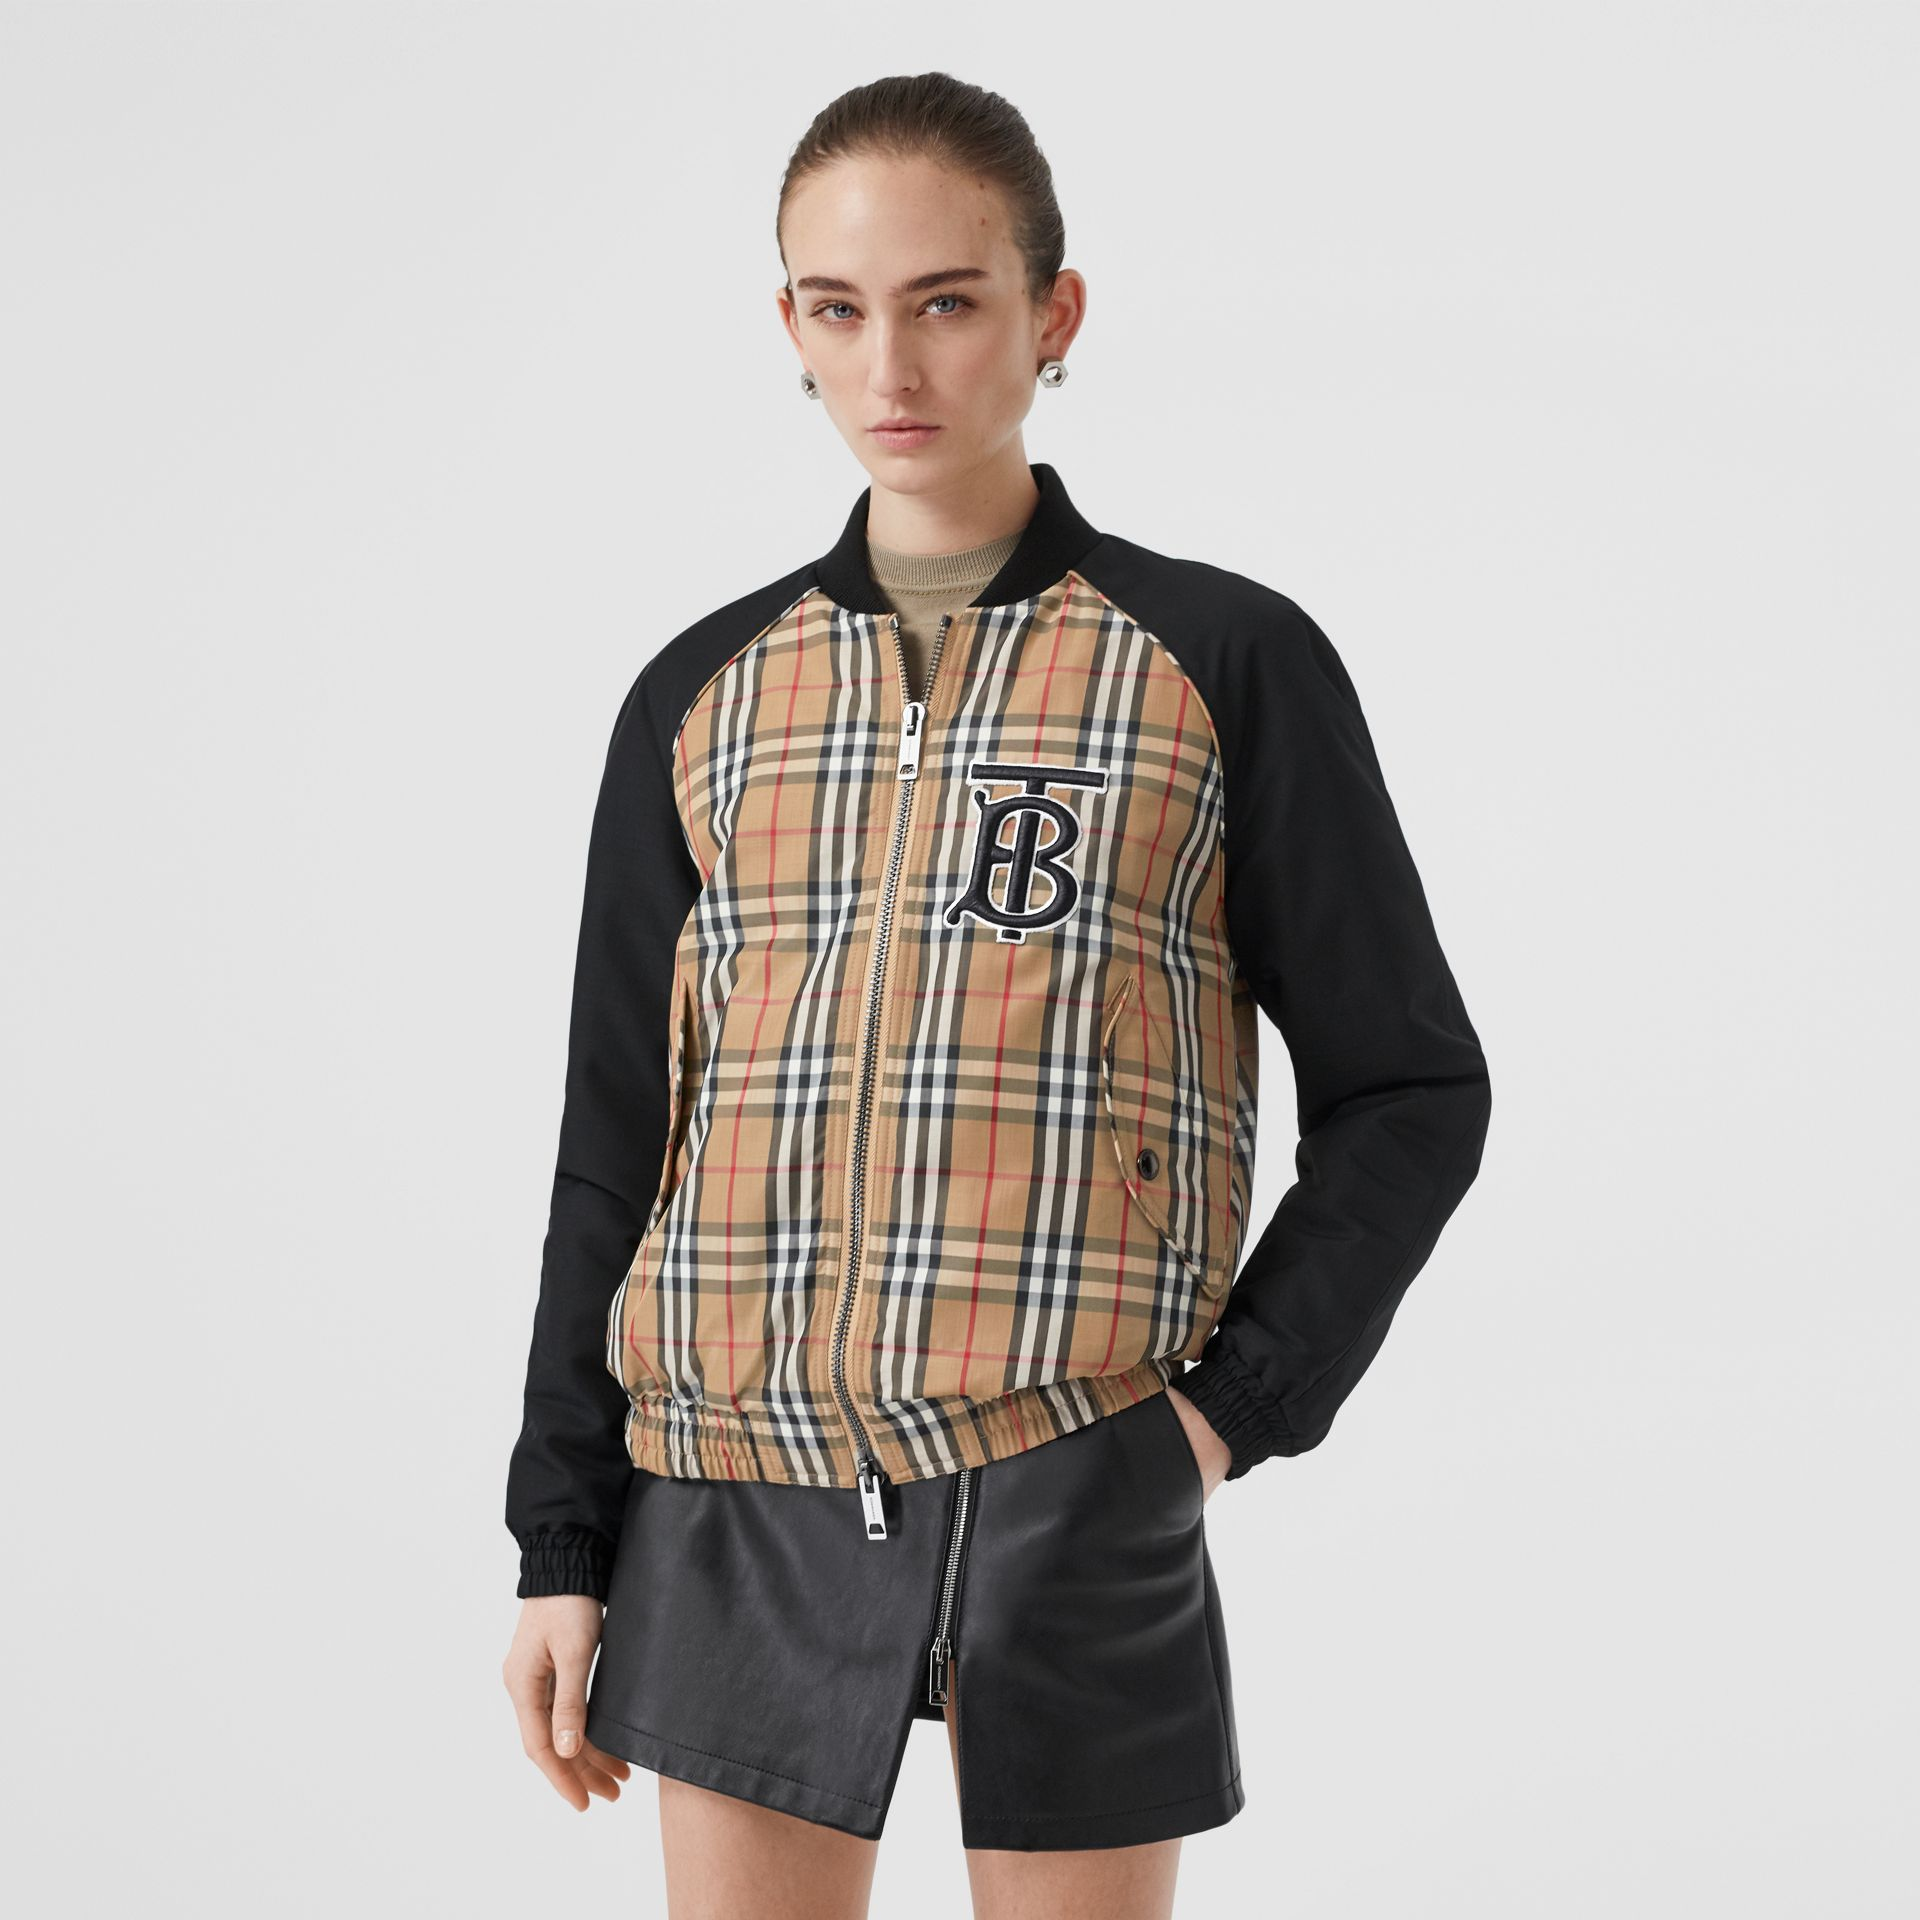 Monogram Motif Vintage Check Bomber Jacket in Black - Women | Burberry United States - gallery image 4